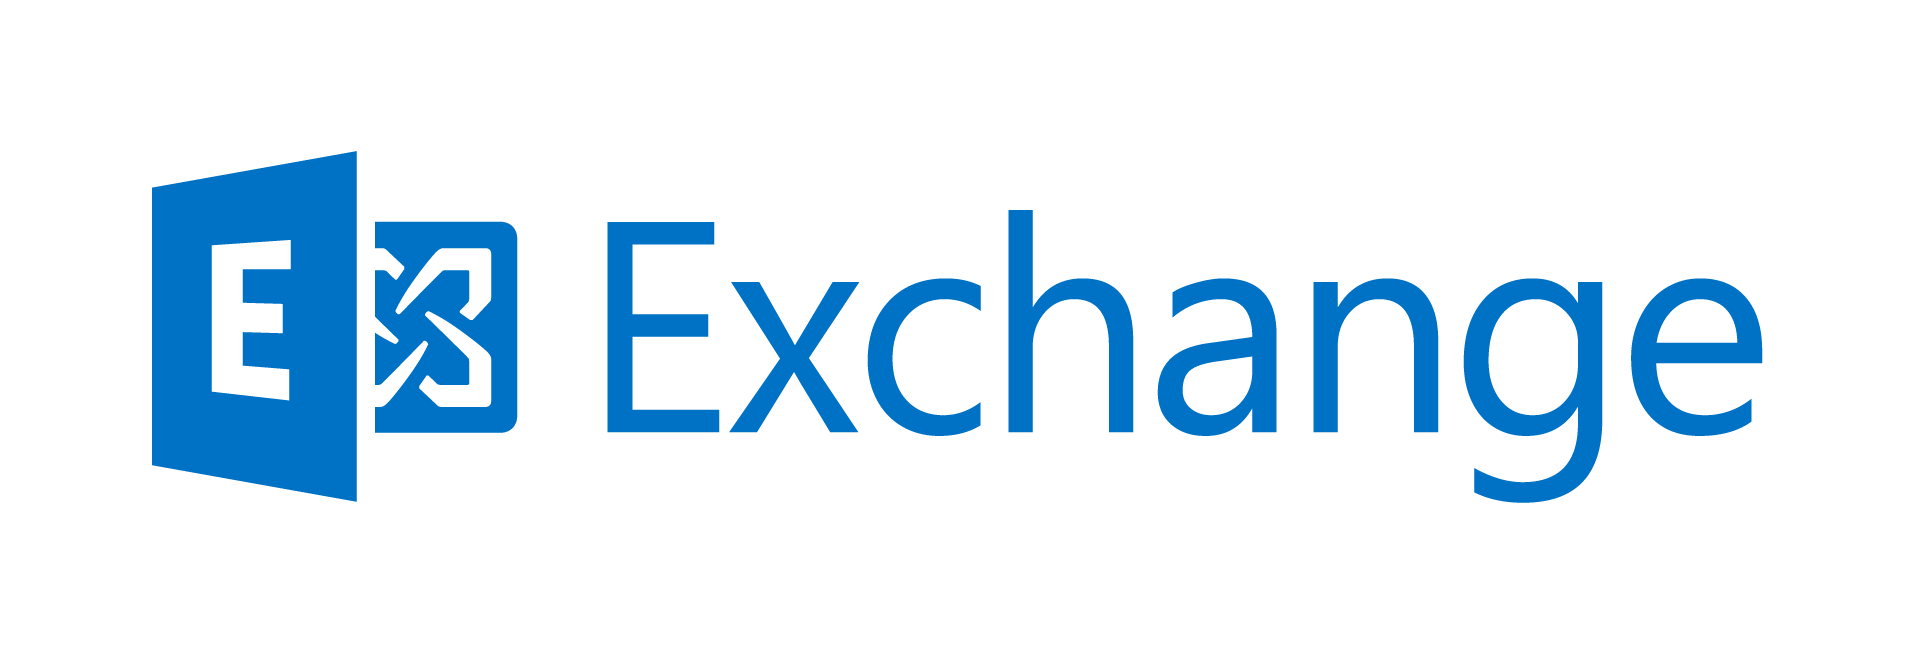 E-mail Exchange - Comparativo E-mails - SECNET